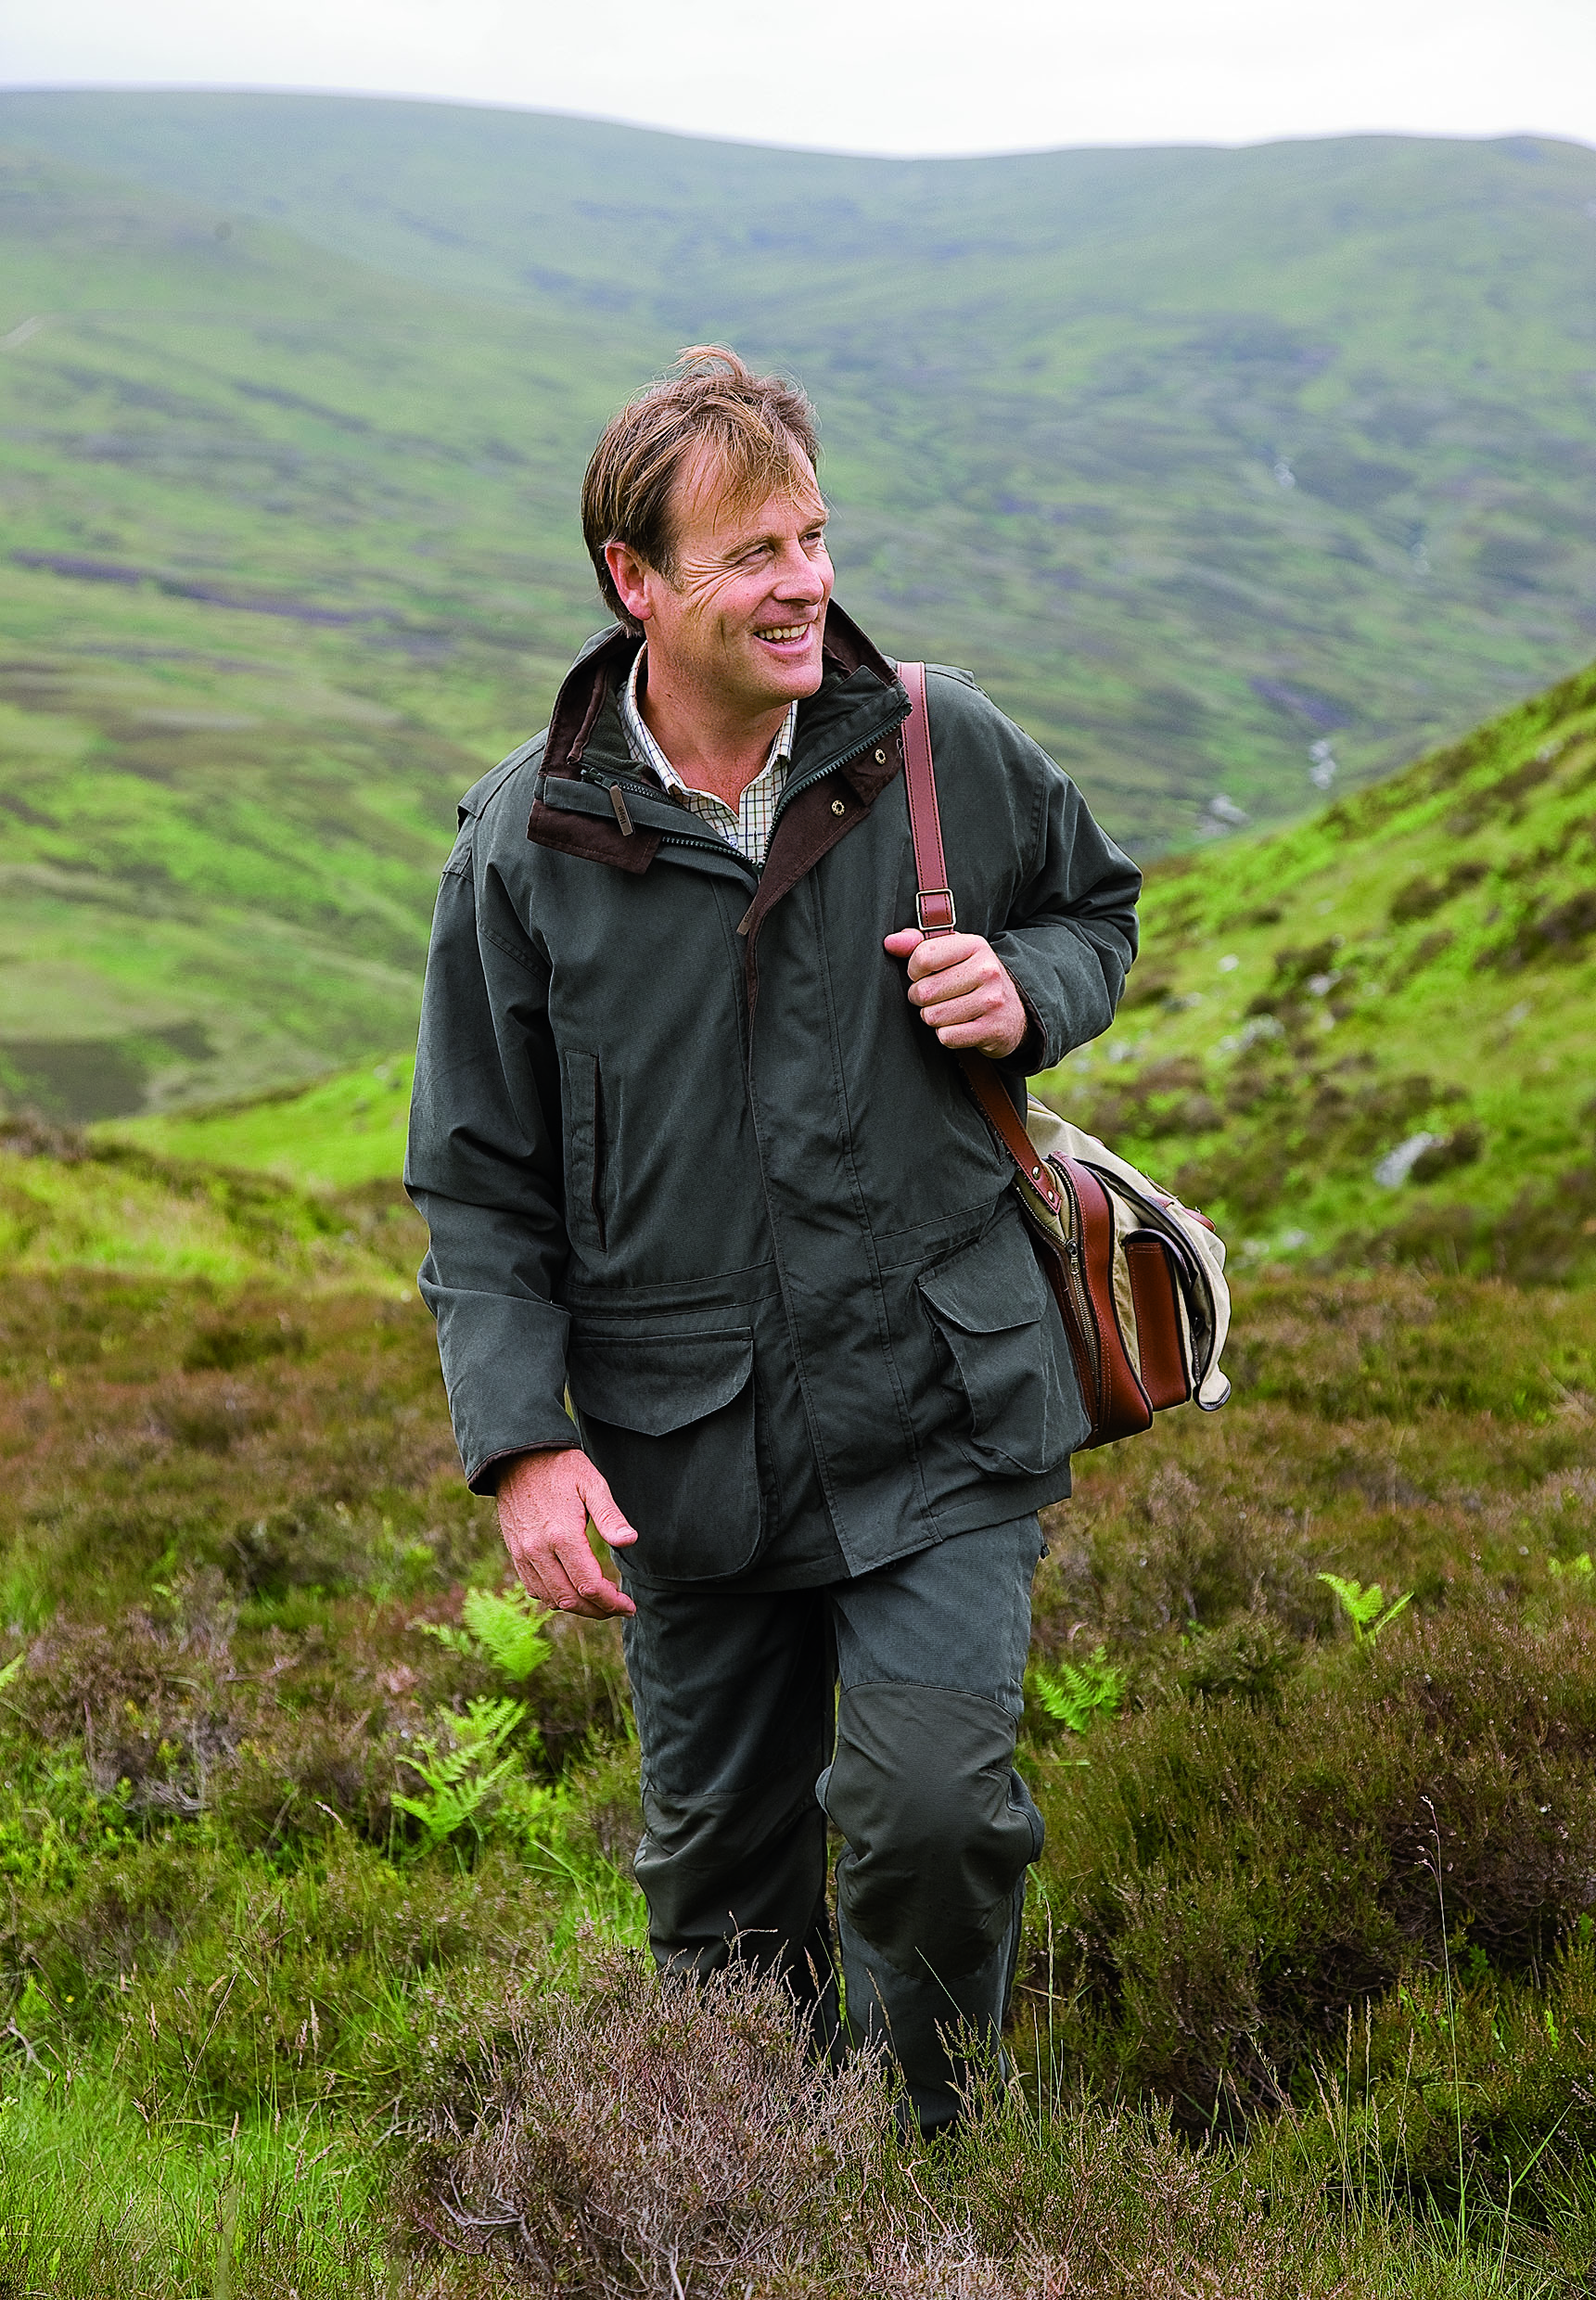 Hoggs of Fife Ranger Jacket and Trousers set